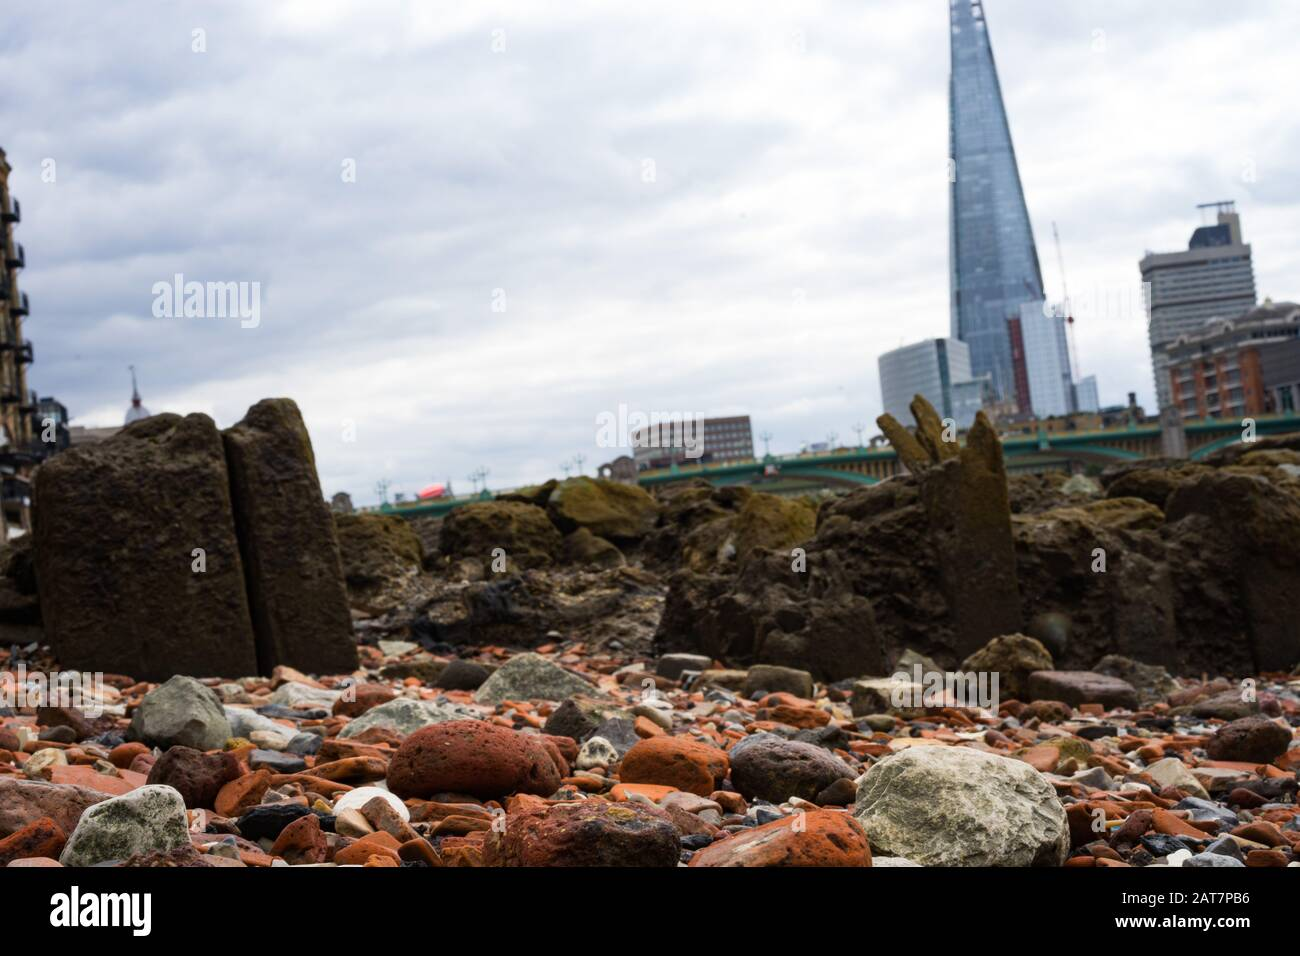 Pebbles on the foreshore of the River Thames looking towards  the shard building. A popular place for mudlarking and archaeological finds. Stock Photo